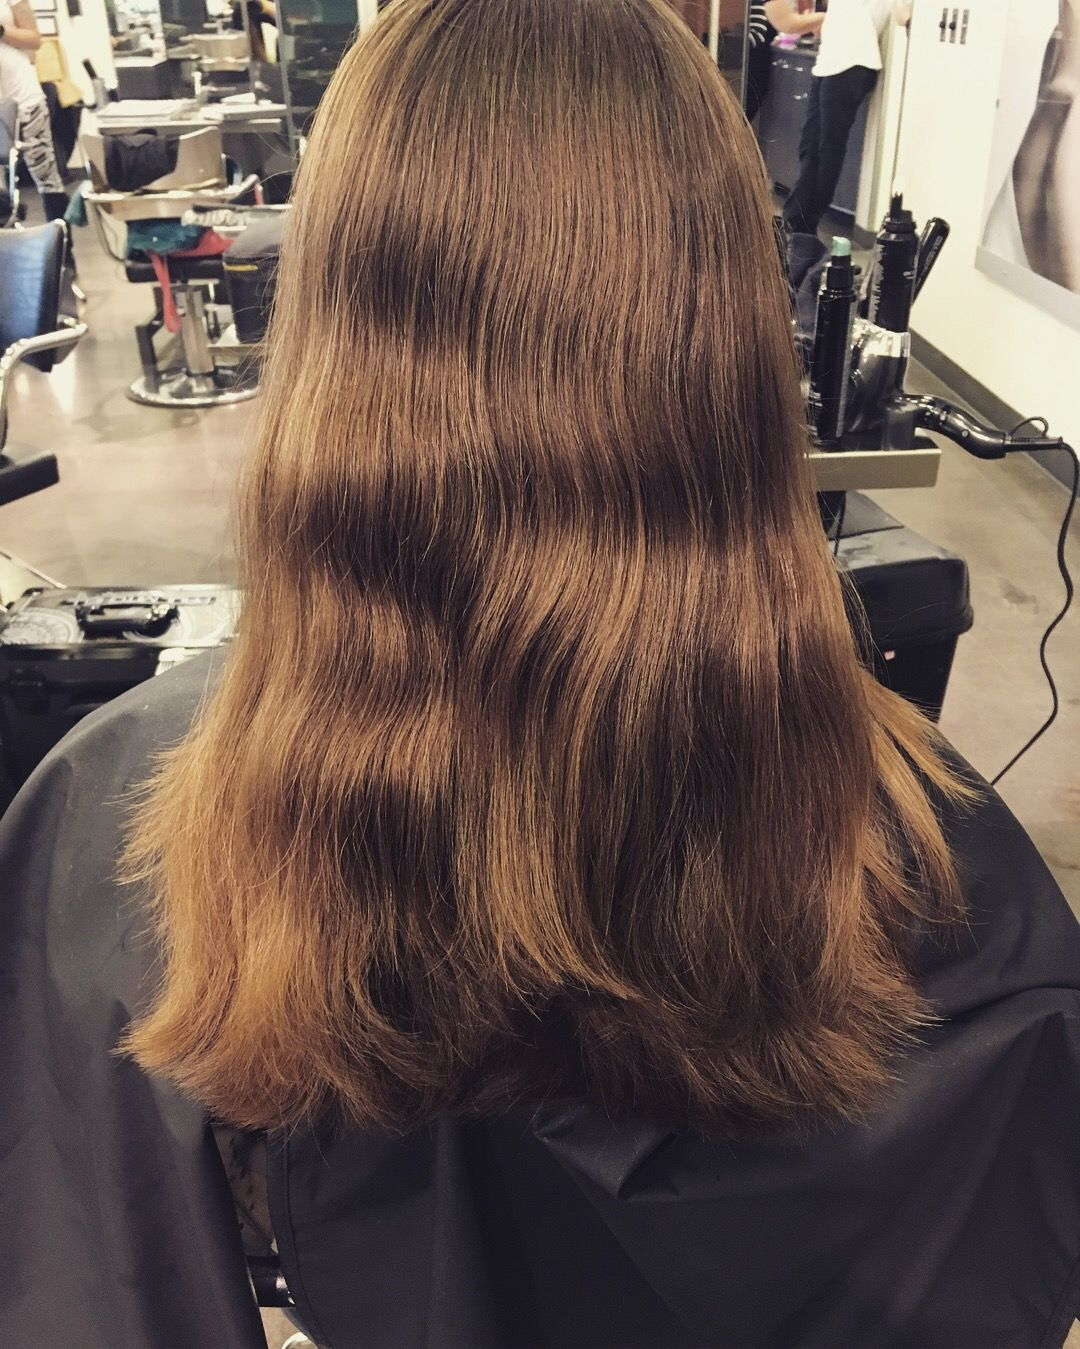 After One Length Haircut With Round Layers Done By Chloe Kruse